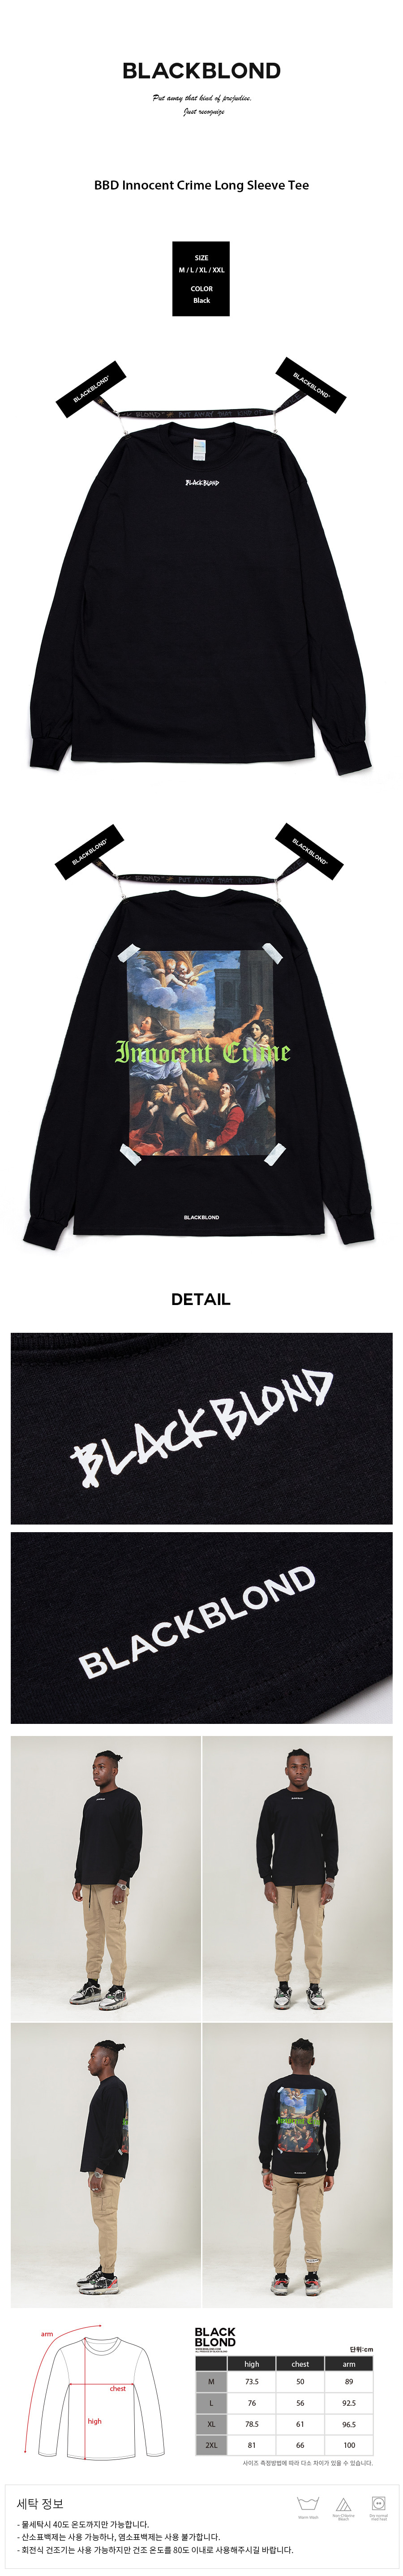 블랙블론드 BLACKBLOND - BBD Innocent Crime Long Sleeve Tee (Black)